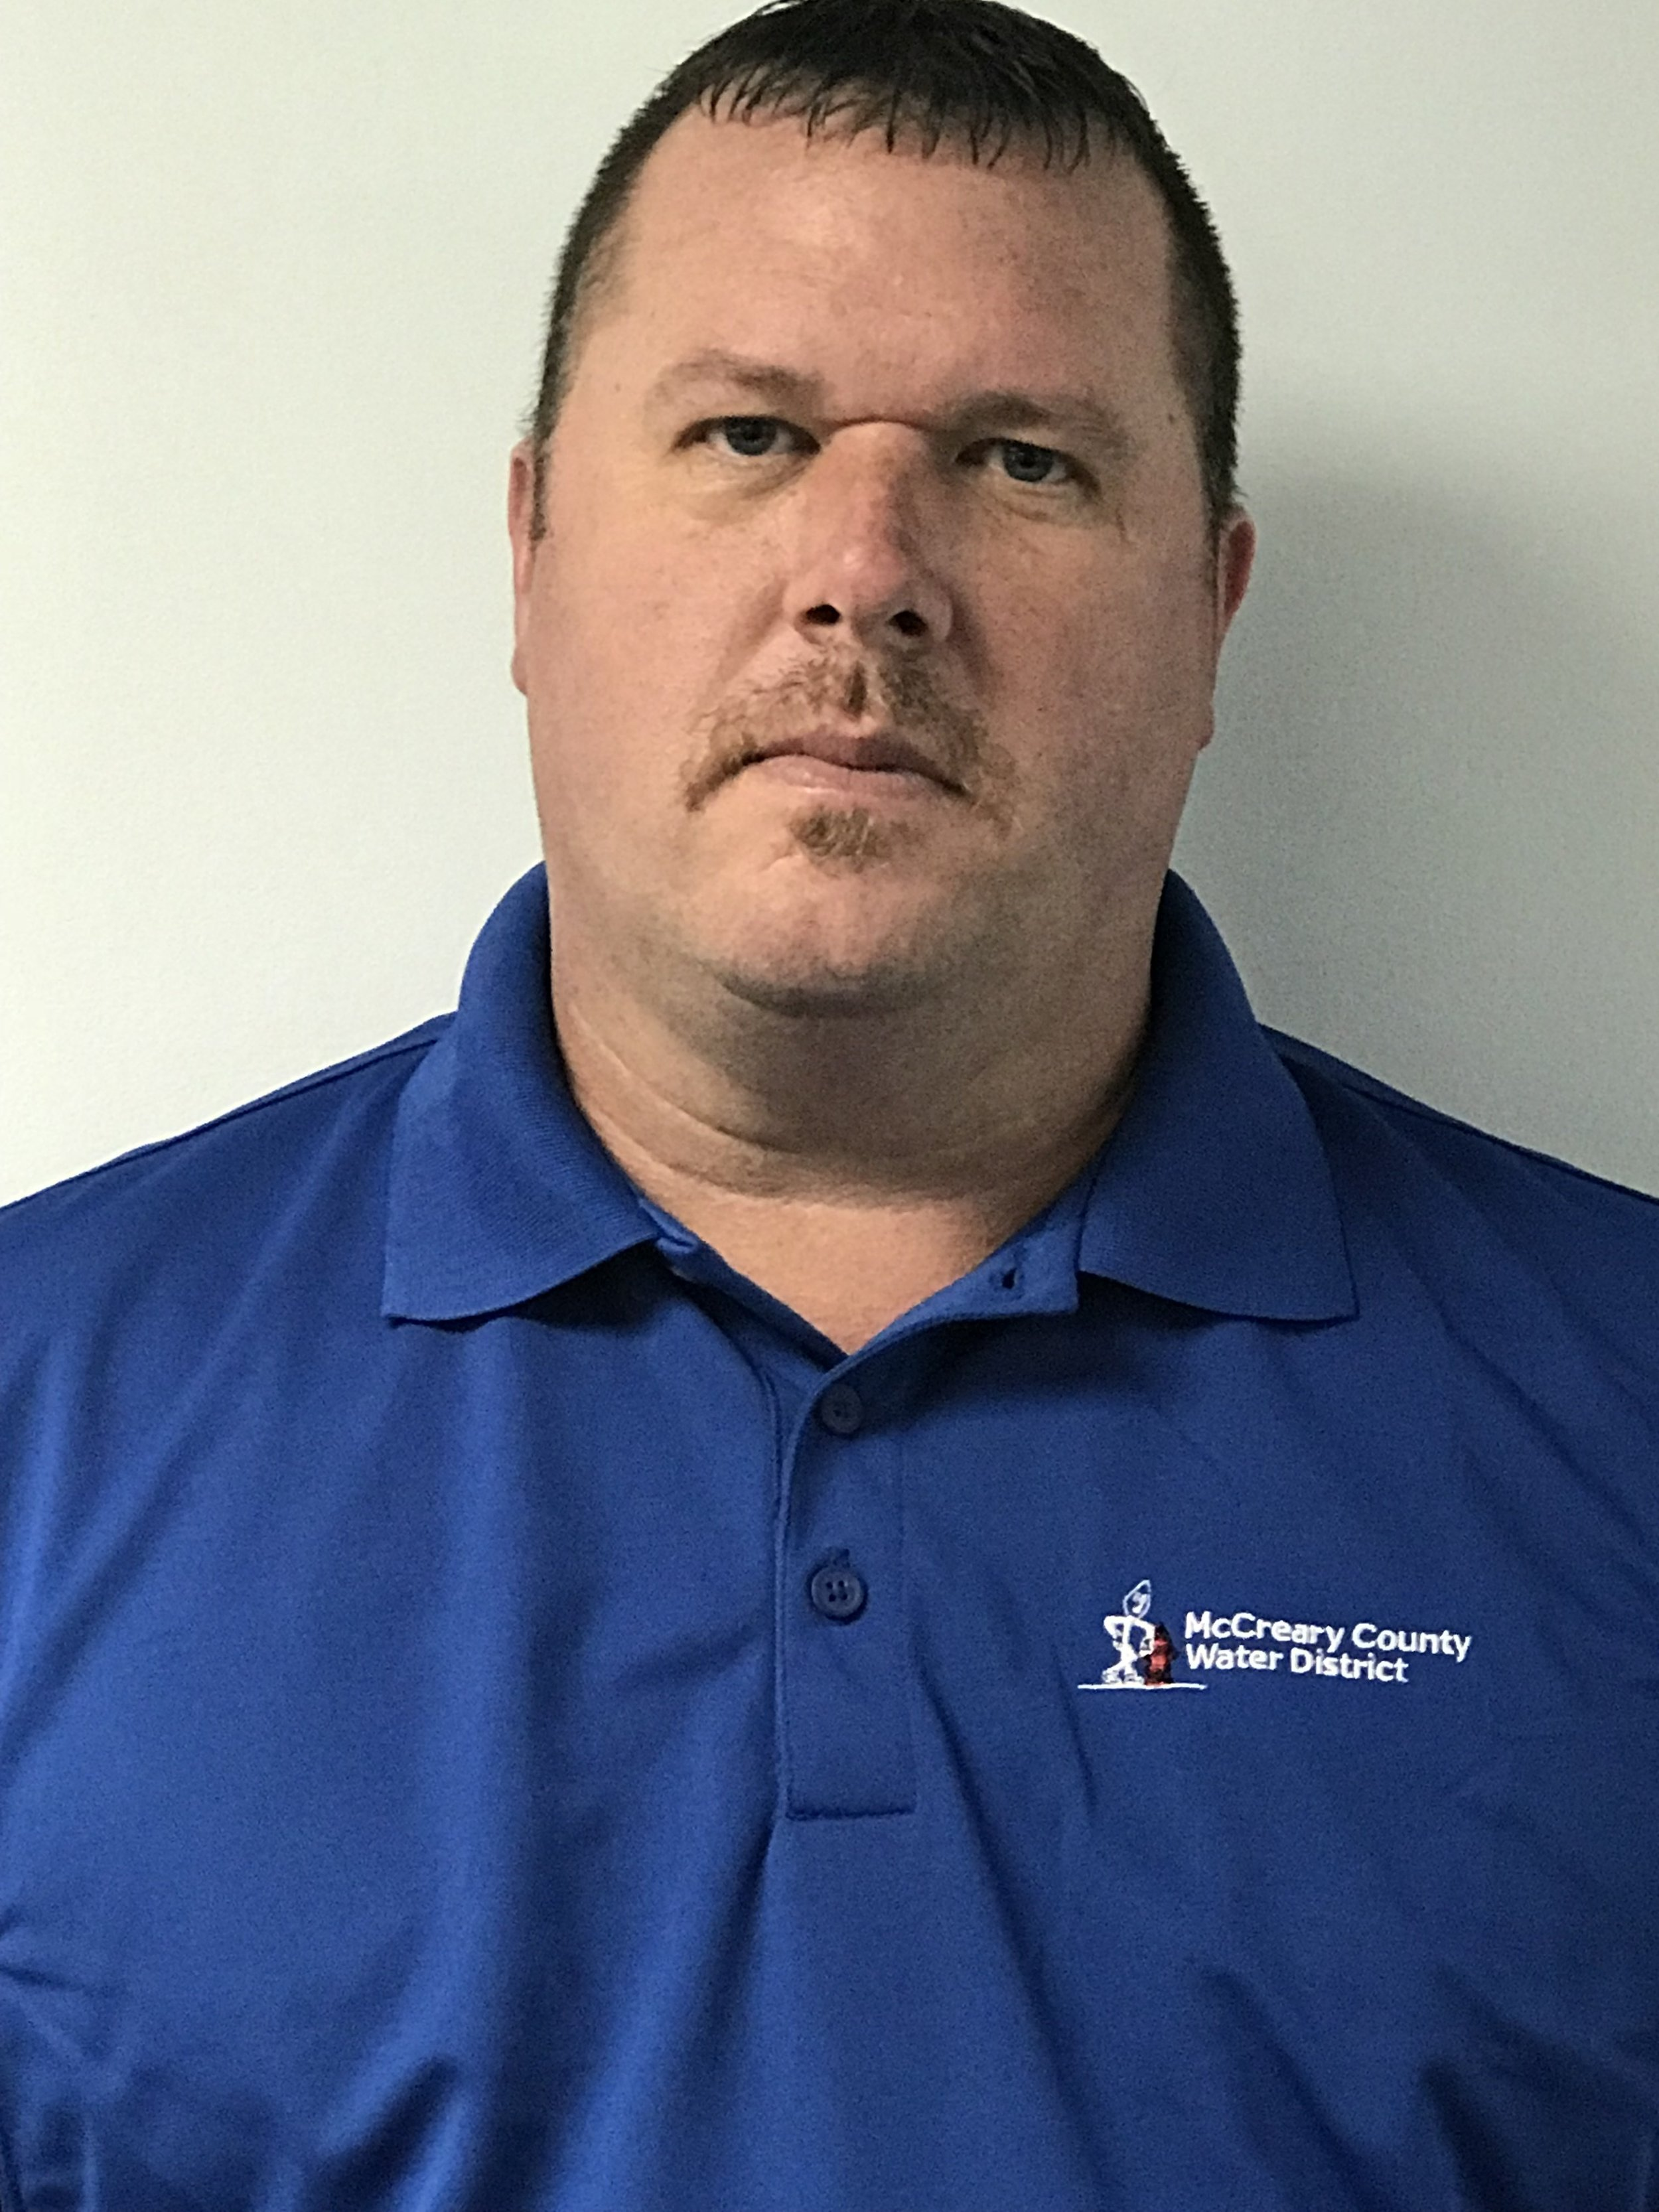 JIMMY ROSS  has worked at the water district since 2010. He holds a Drinking Water Treatment Class IV Certification and is also a certified Microbiology Lab Analyst.